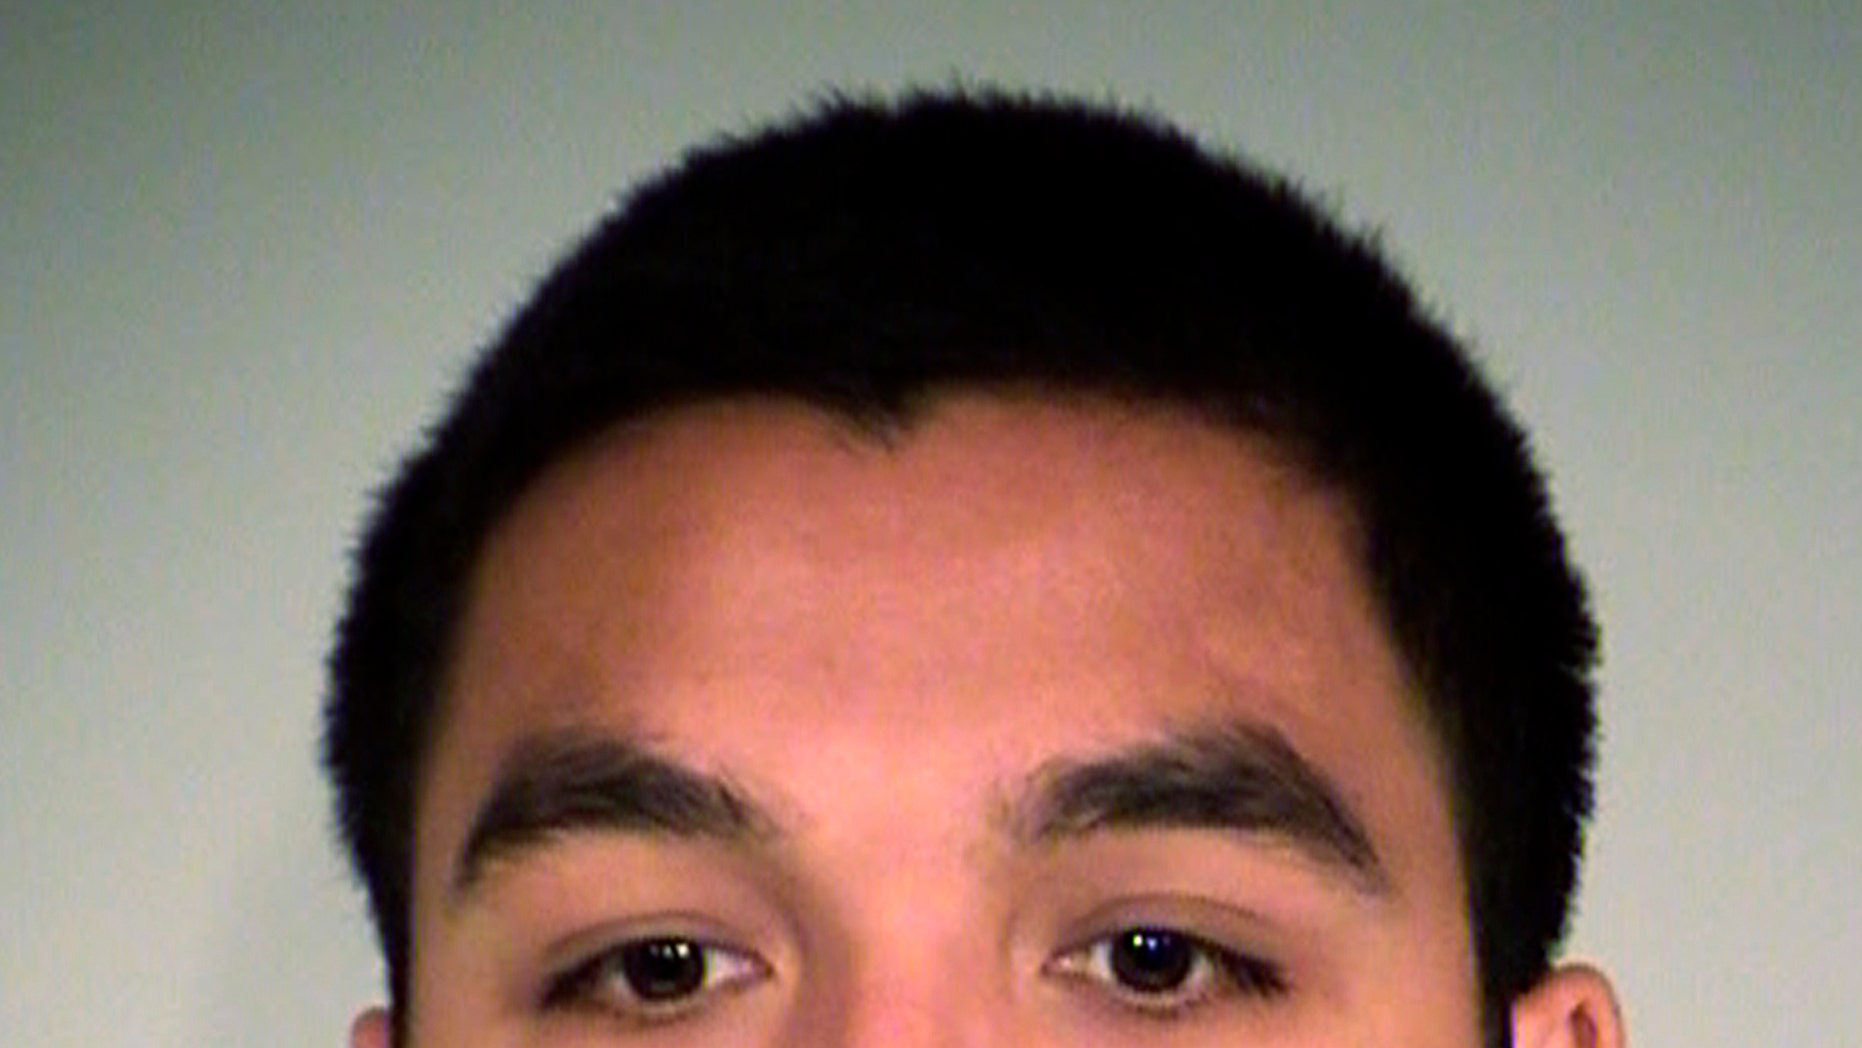 This Thursday, Nov. 17, 2016, file photo provided by the Ramsey County Sheriff's Office shows St. Anthony police Officer Jeronimo Yanez, who prosecutors say shot 32-year-old Philando Castile during a July 6, 2016, traffic stop in Falcon heights, Minn., after Castile told him he was armed.